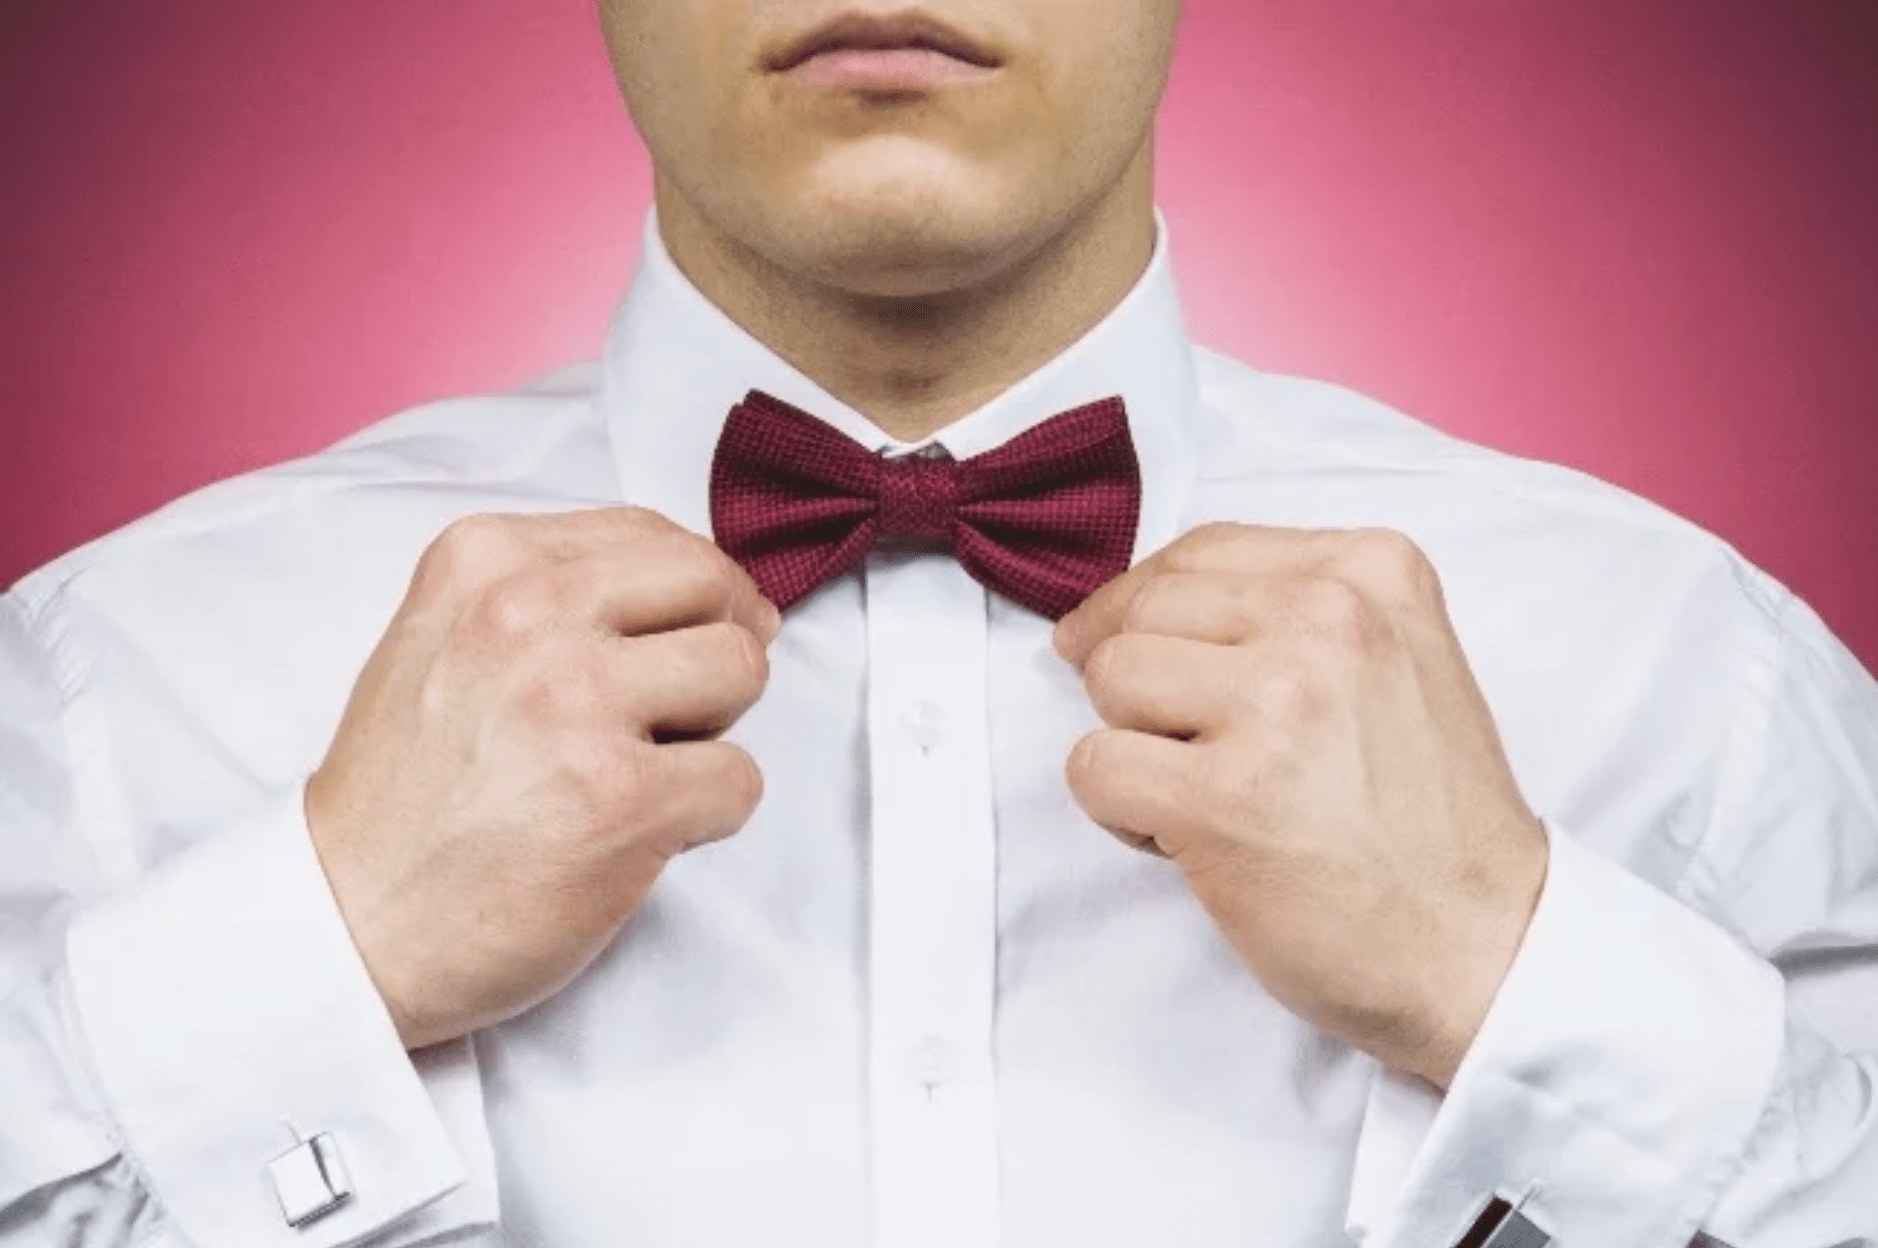 A man straightening his bow tie.